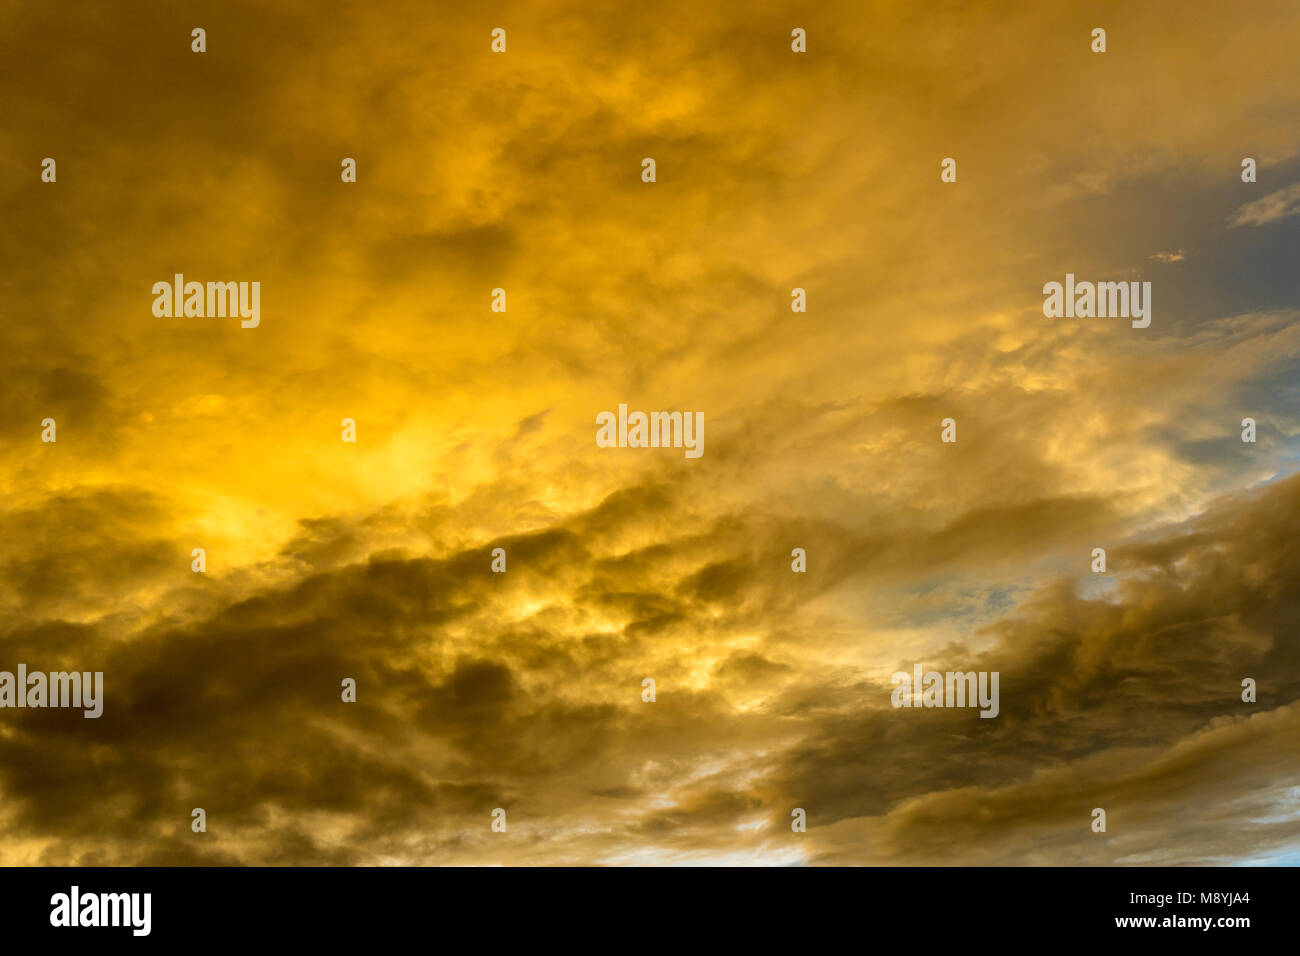 Beautiful sky and rain clouds during sunset - Stock Image